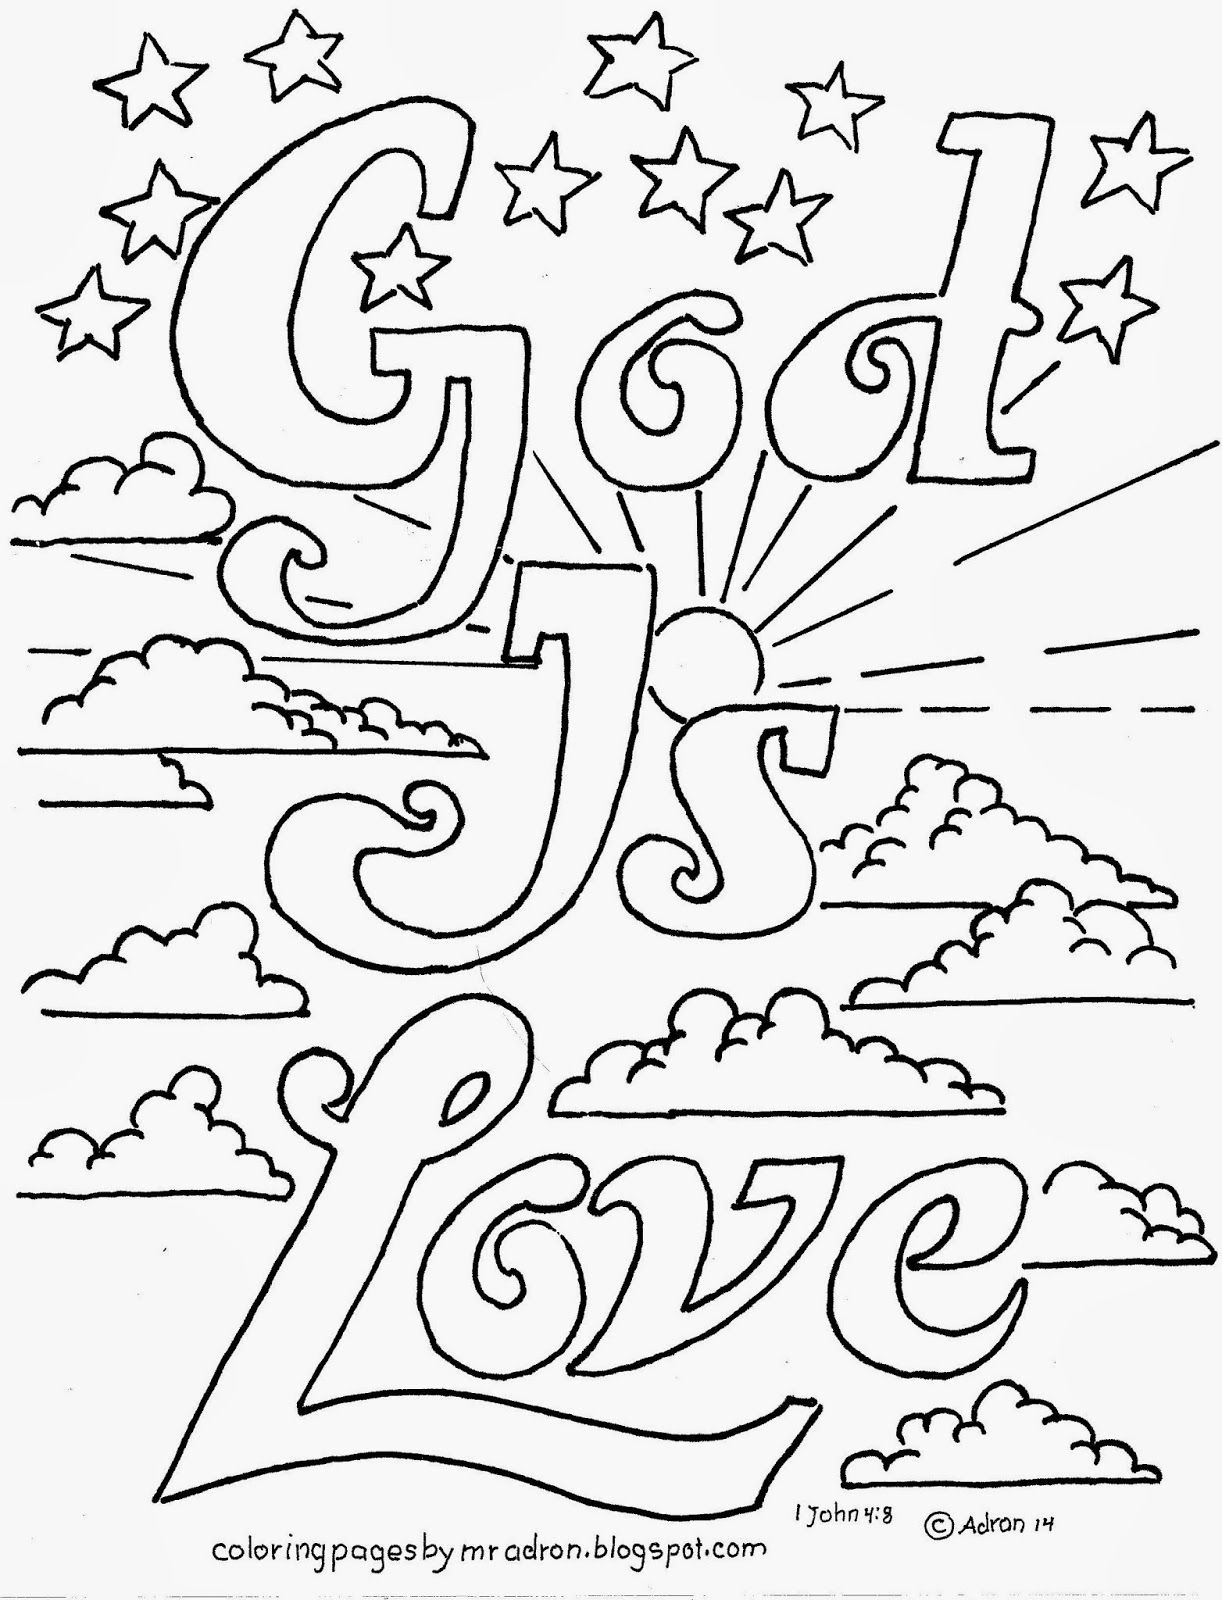 sunday school coloring pages printable - photo#15